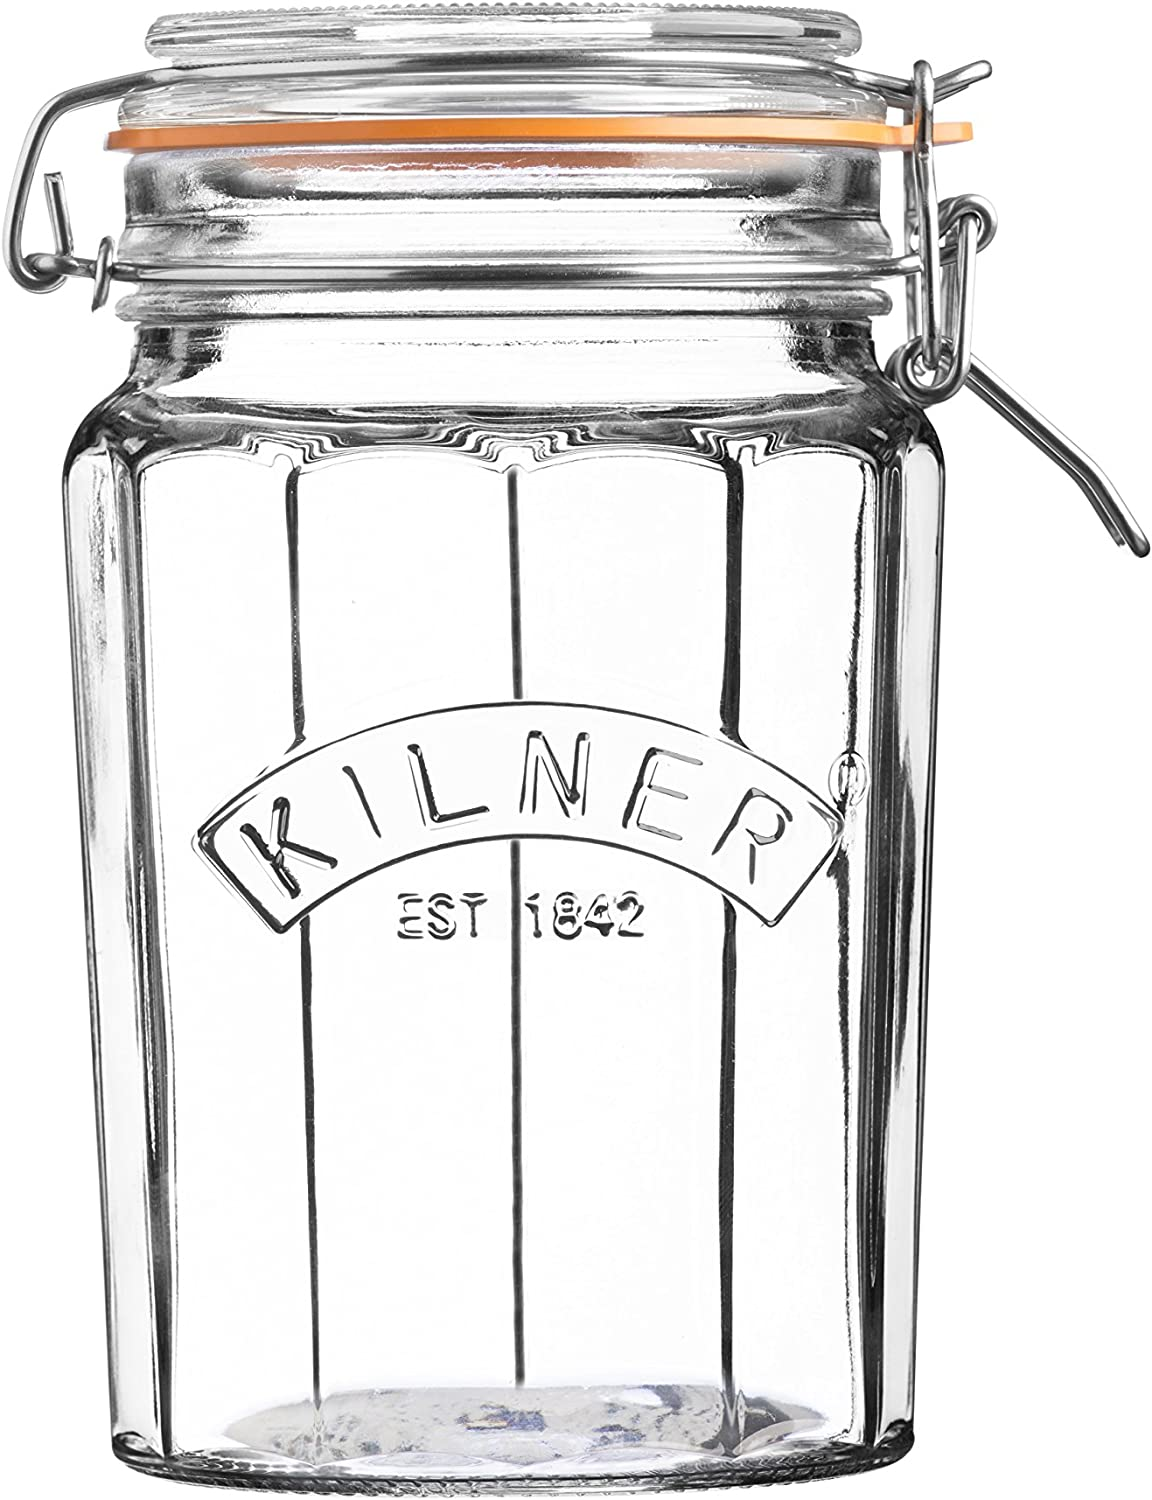 Kilner Glassware Facetted Clip Top Jar, Airtight Seal for Pickling, Preserving, and Storing, 33-1/2-Fluid Ounces